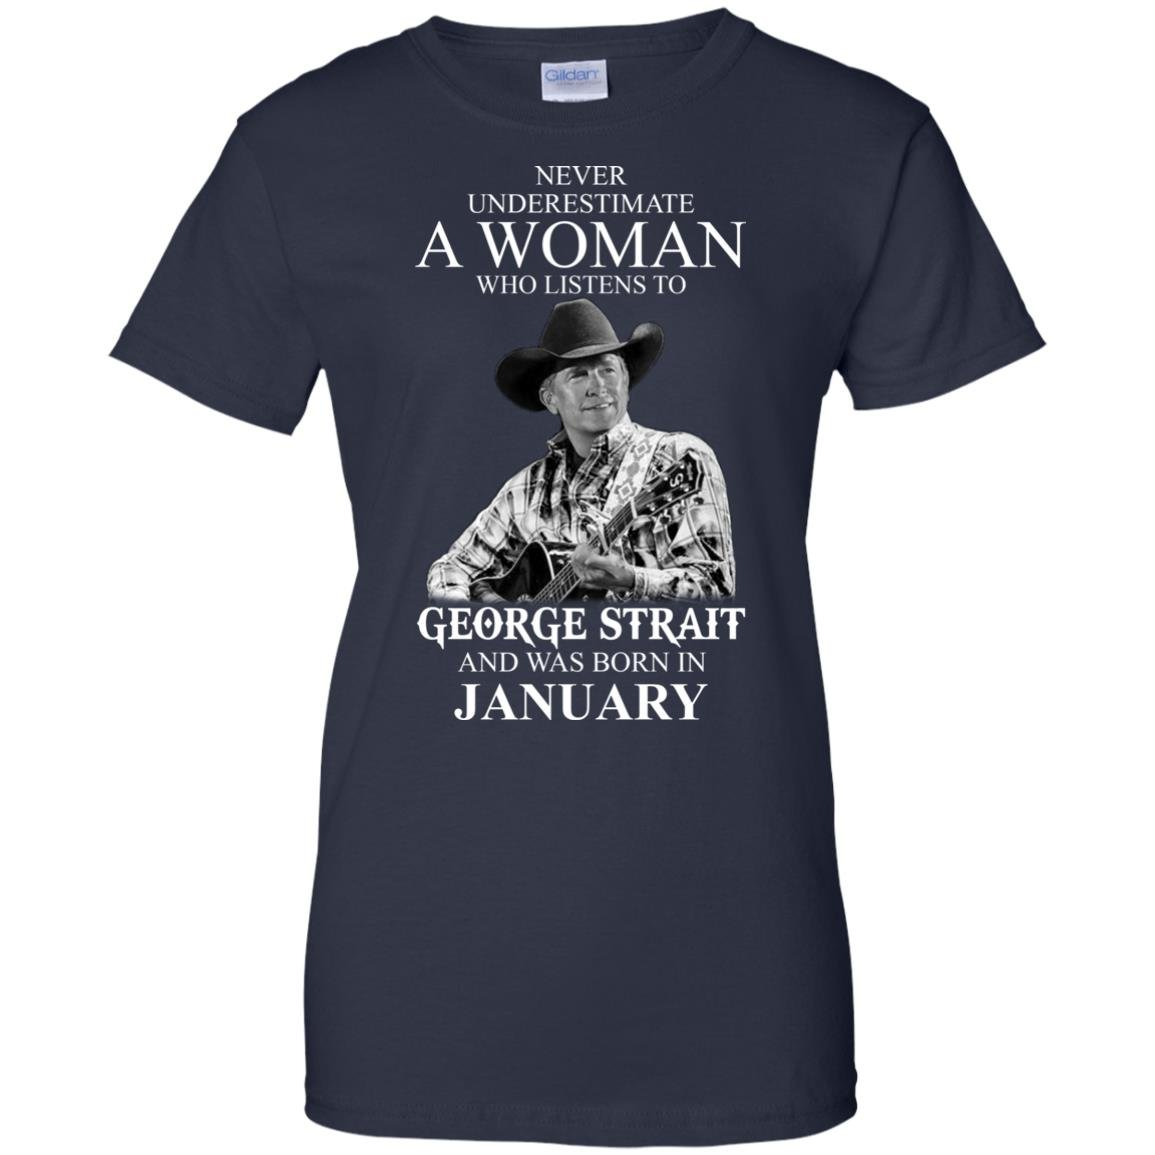 image 469 - Never Underestimate A Woman Who Listens To George Strait And Was Born In January shirt